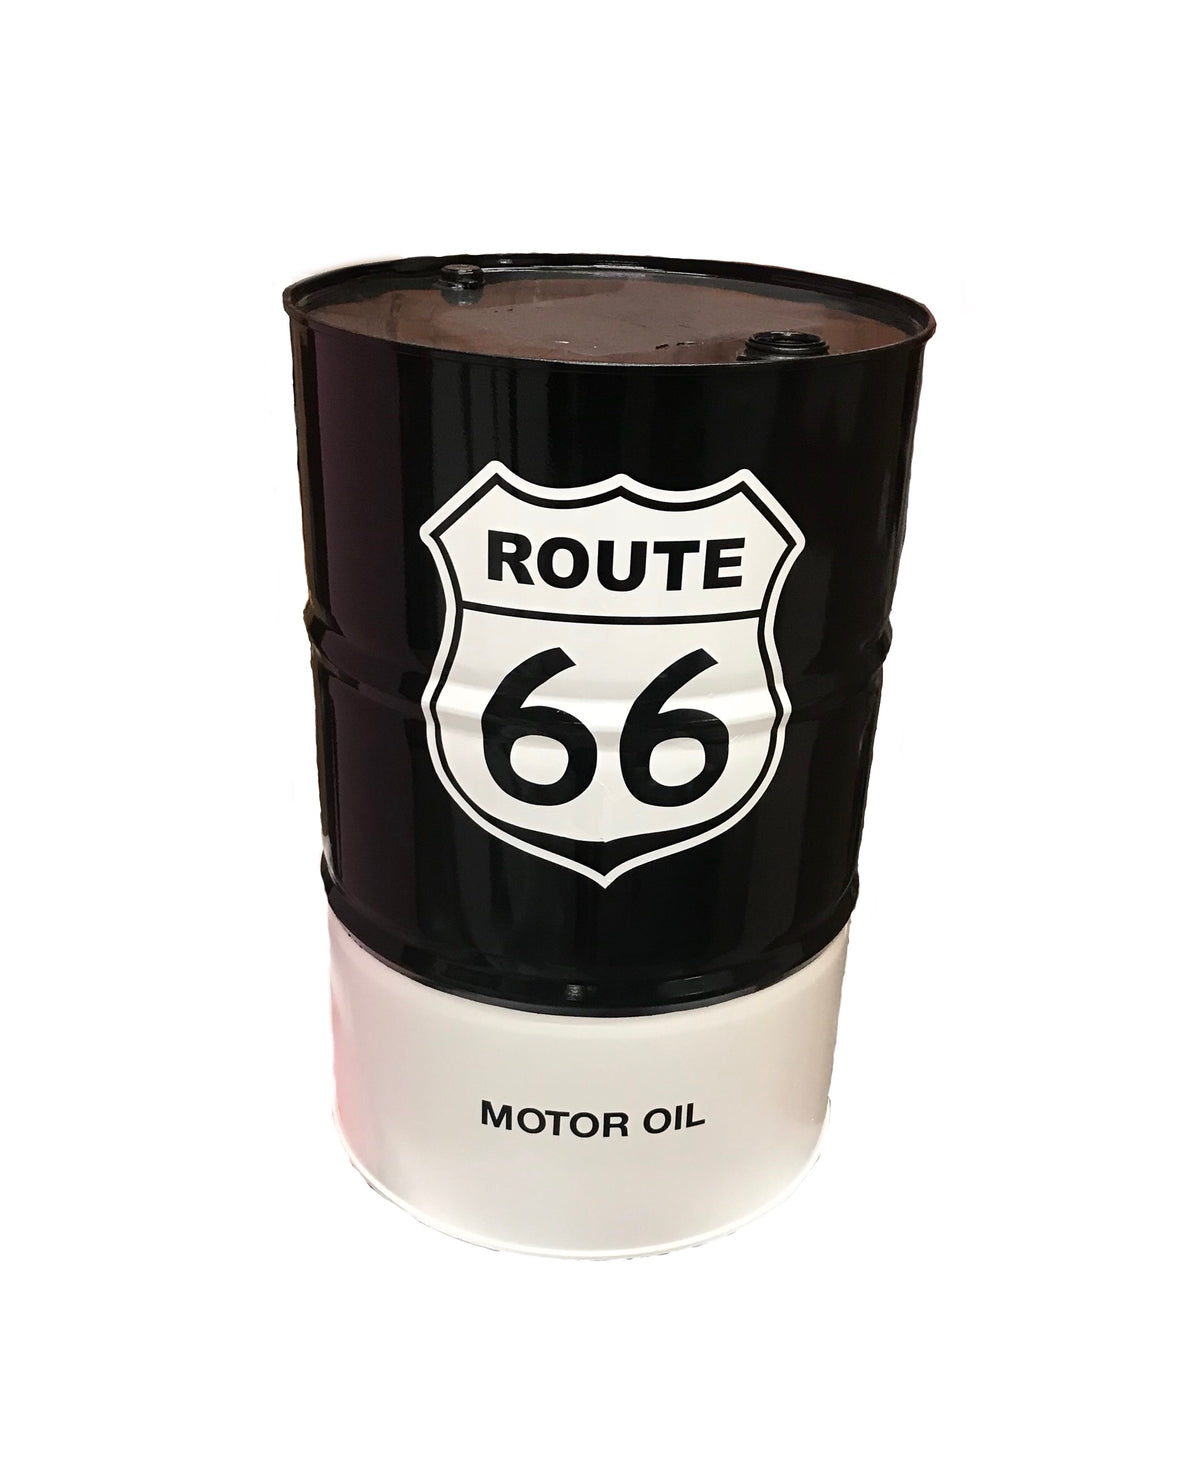 Route 66 Oil Barrel